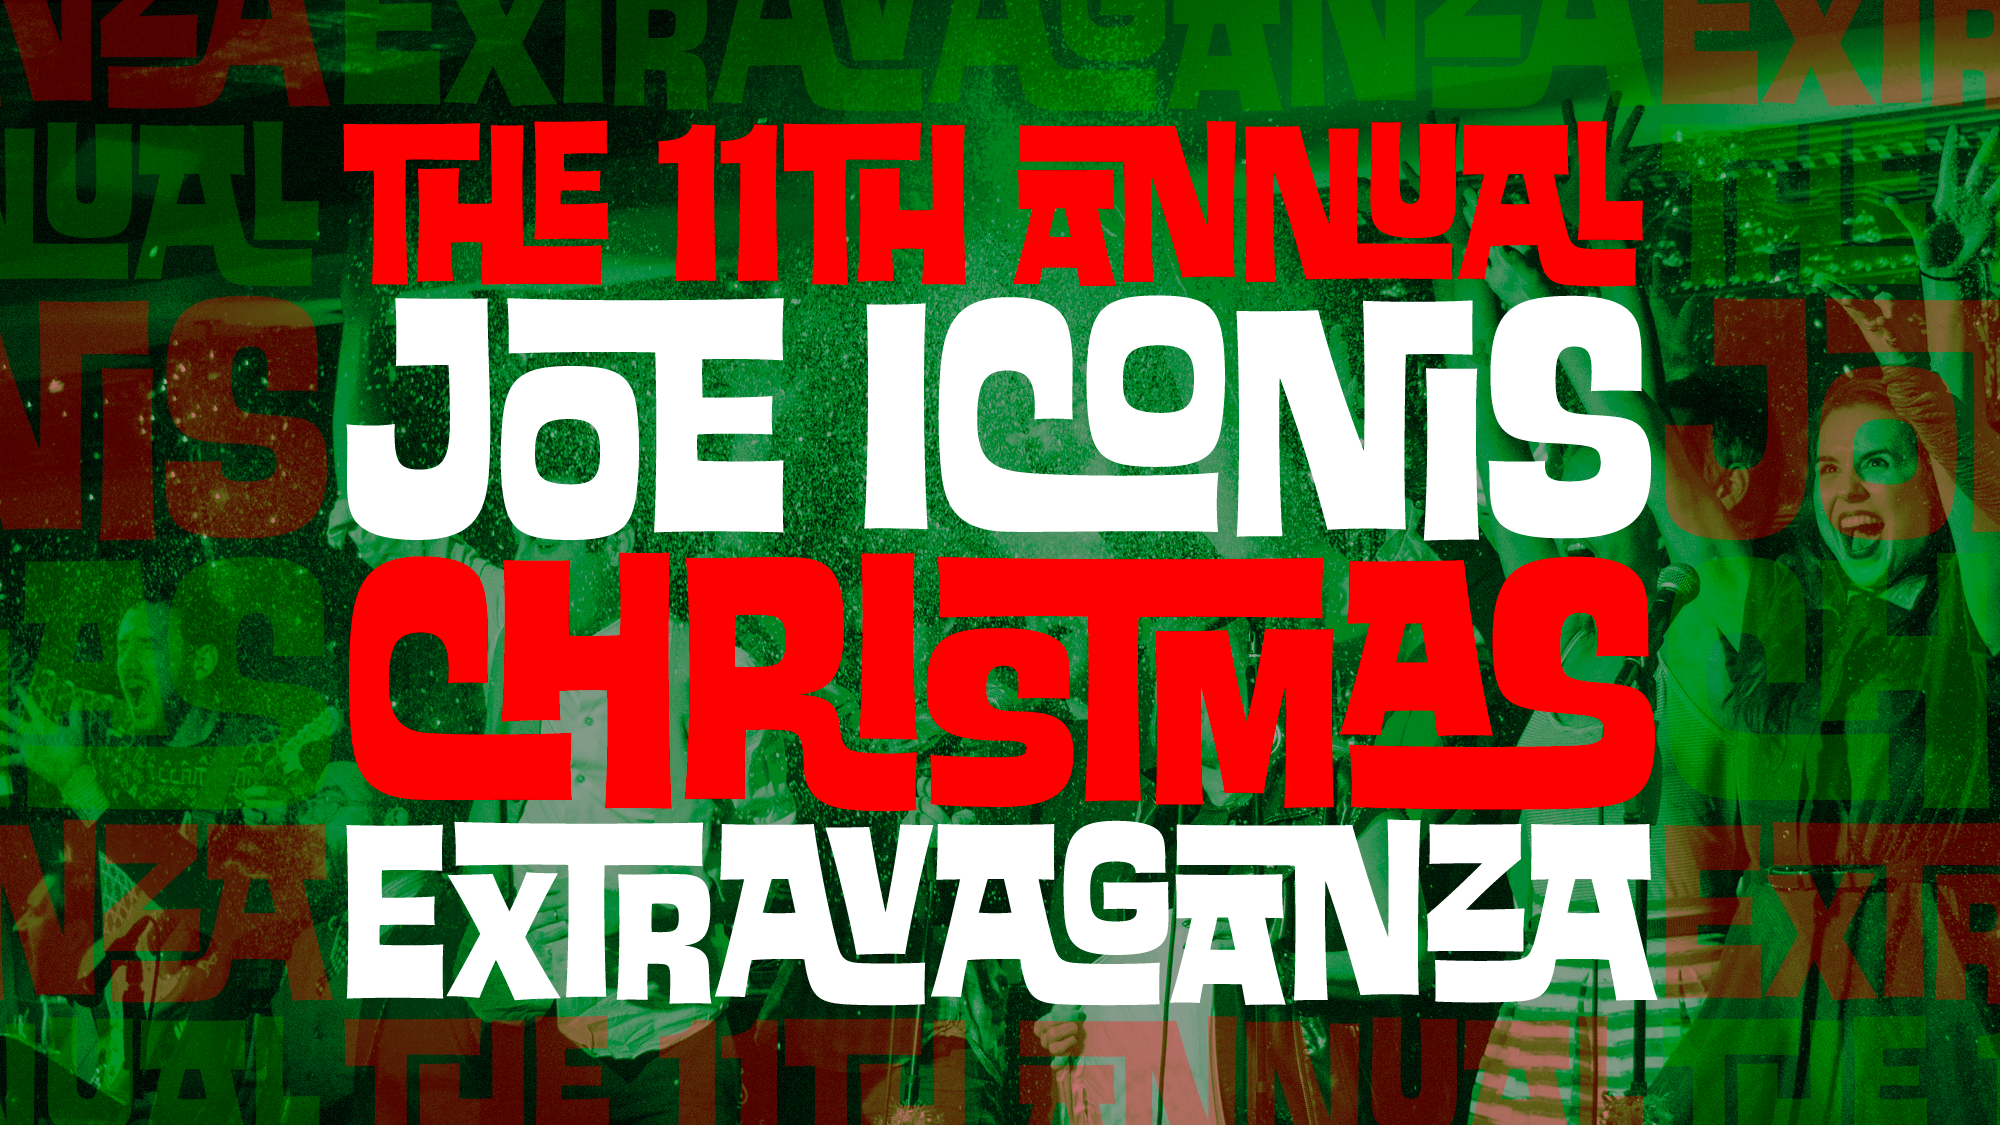 The 11th Annual Joe Iconis Christmas Extravaganza